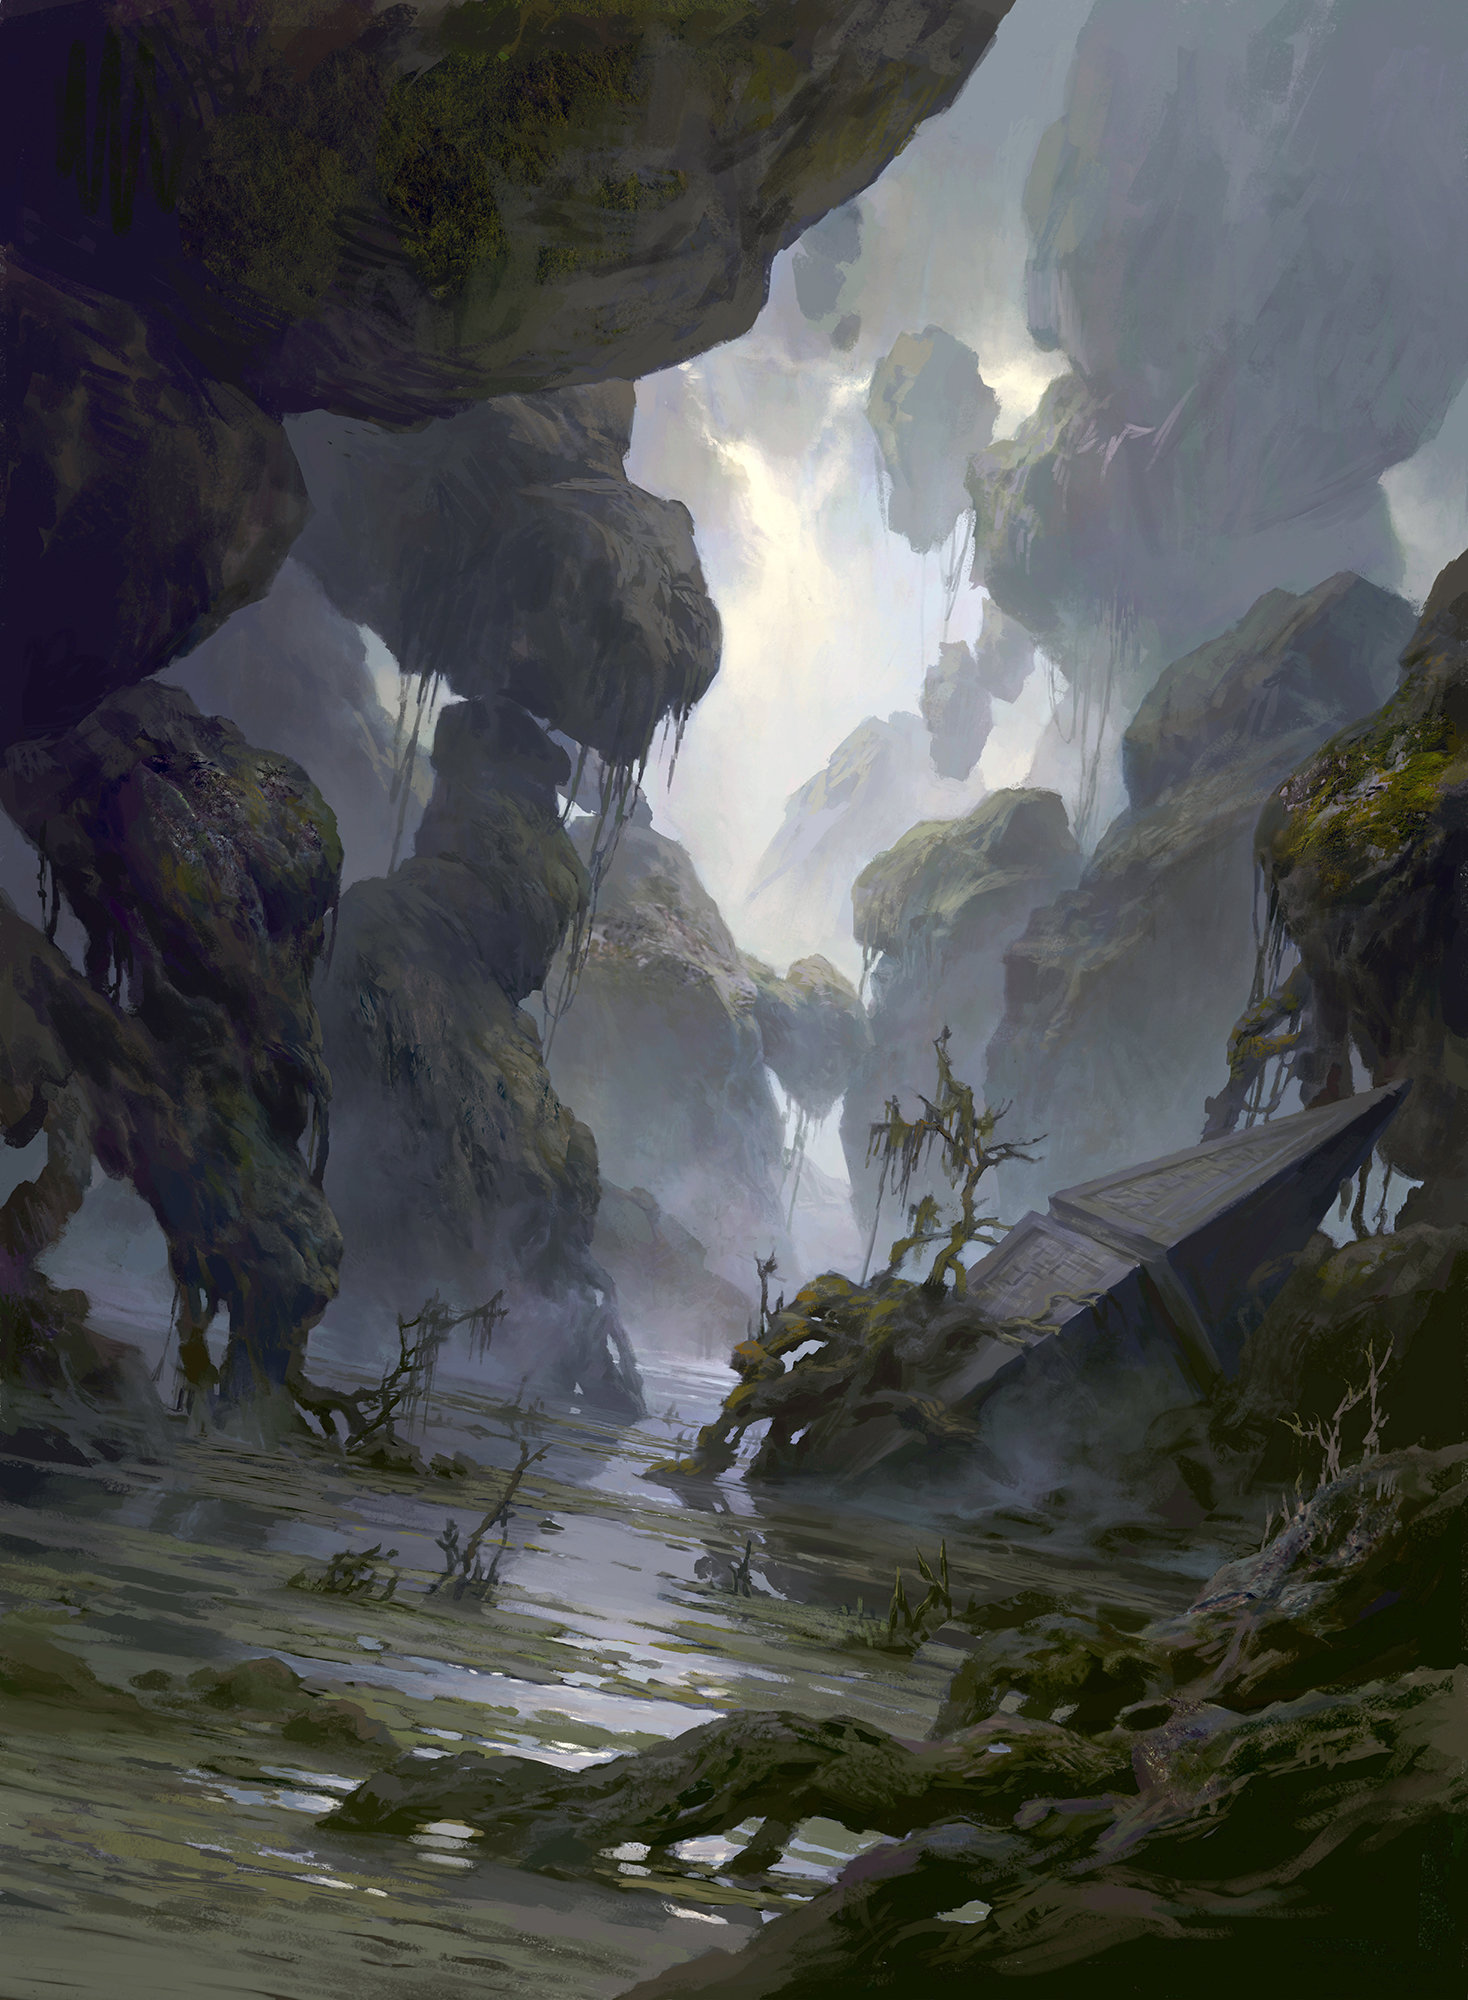 tianhua_xu_digital_painting11